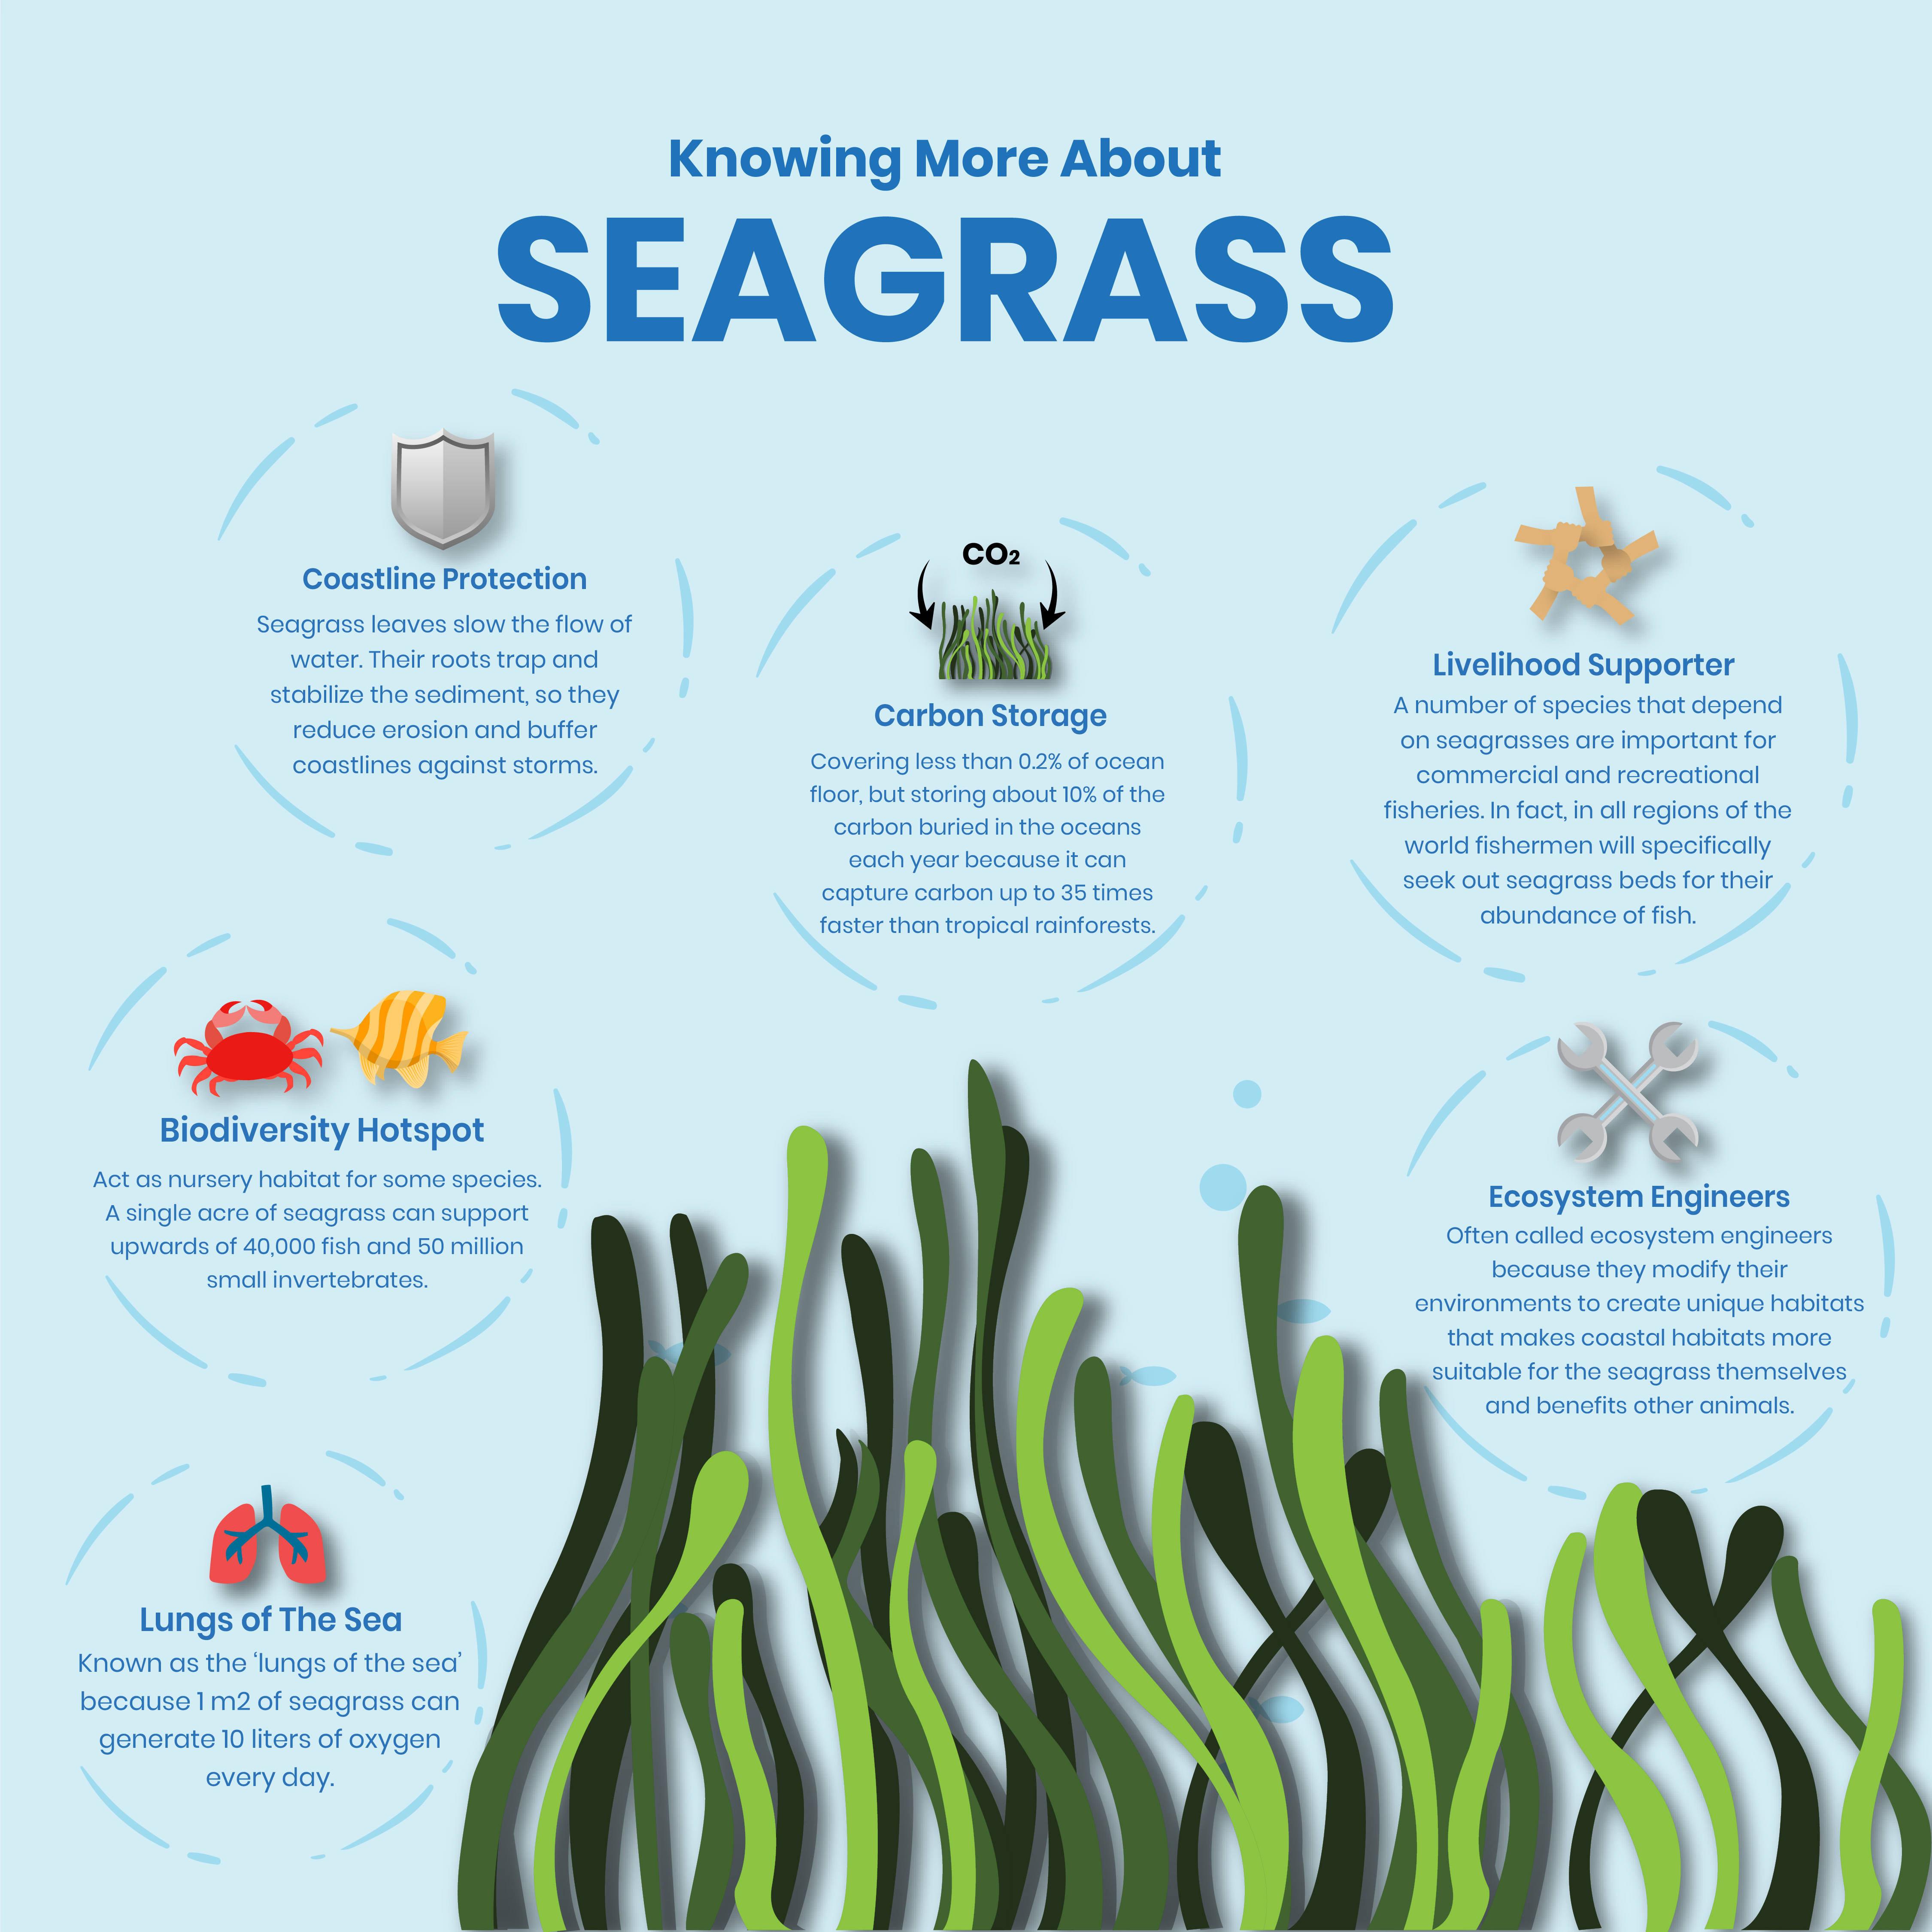 Blue Carbon - Seagrass